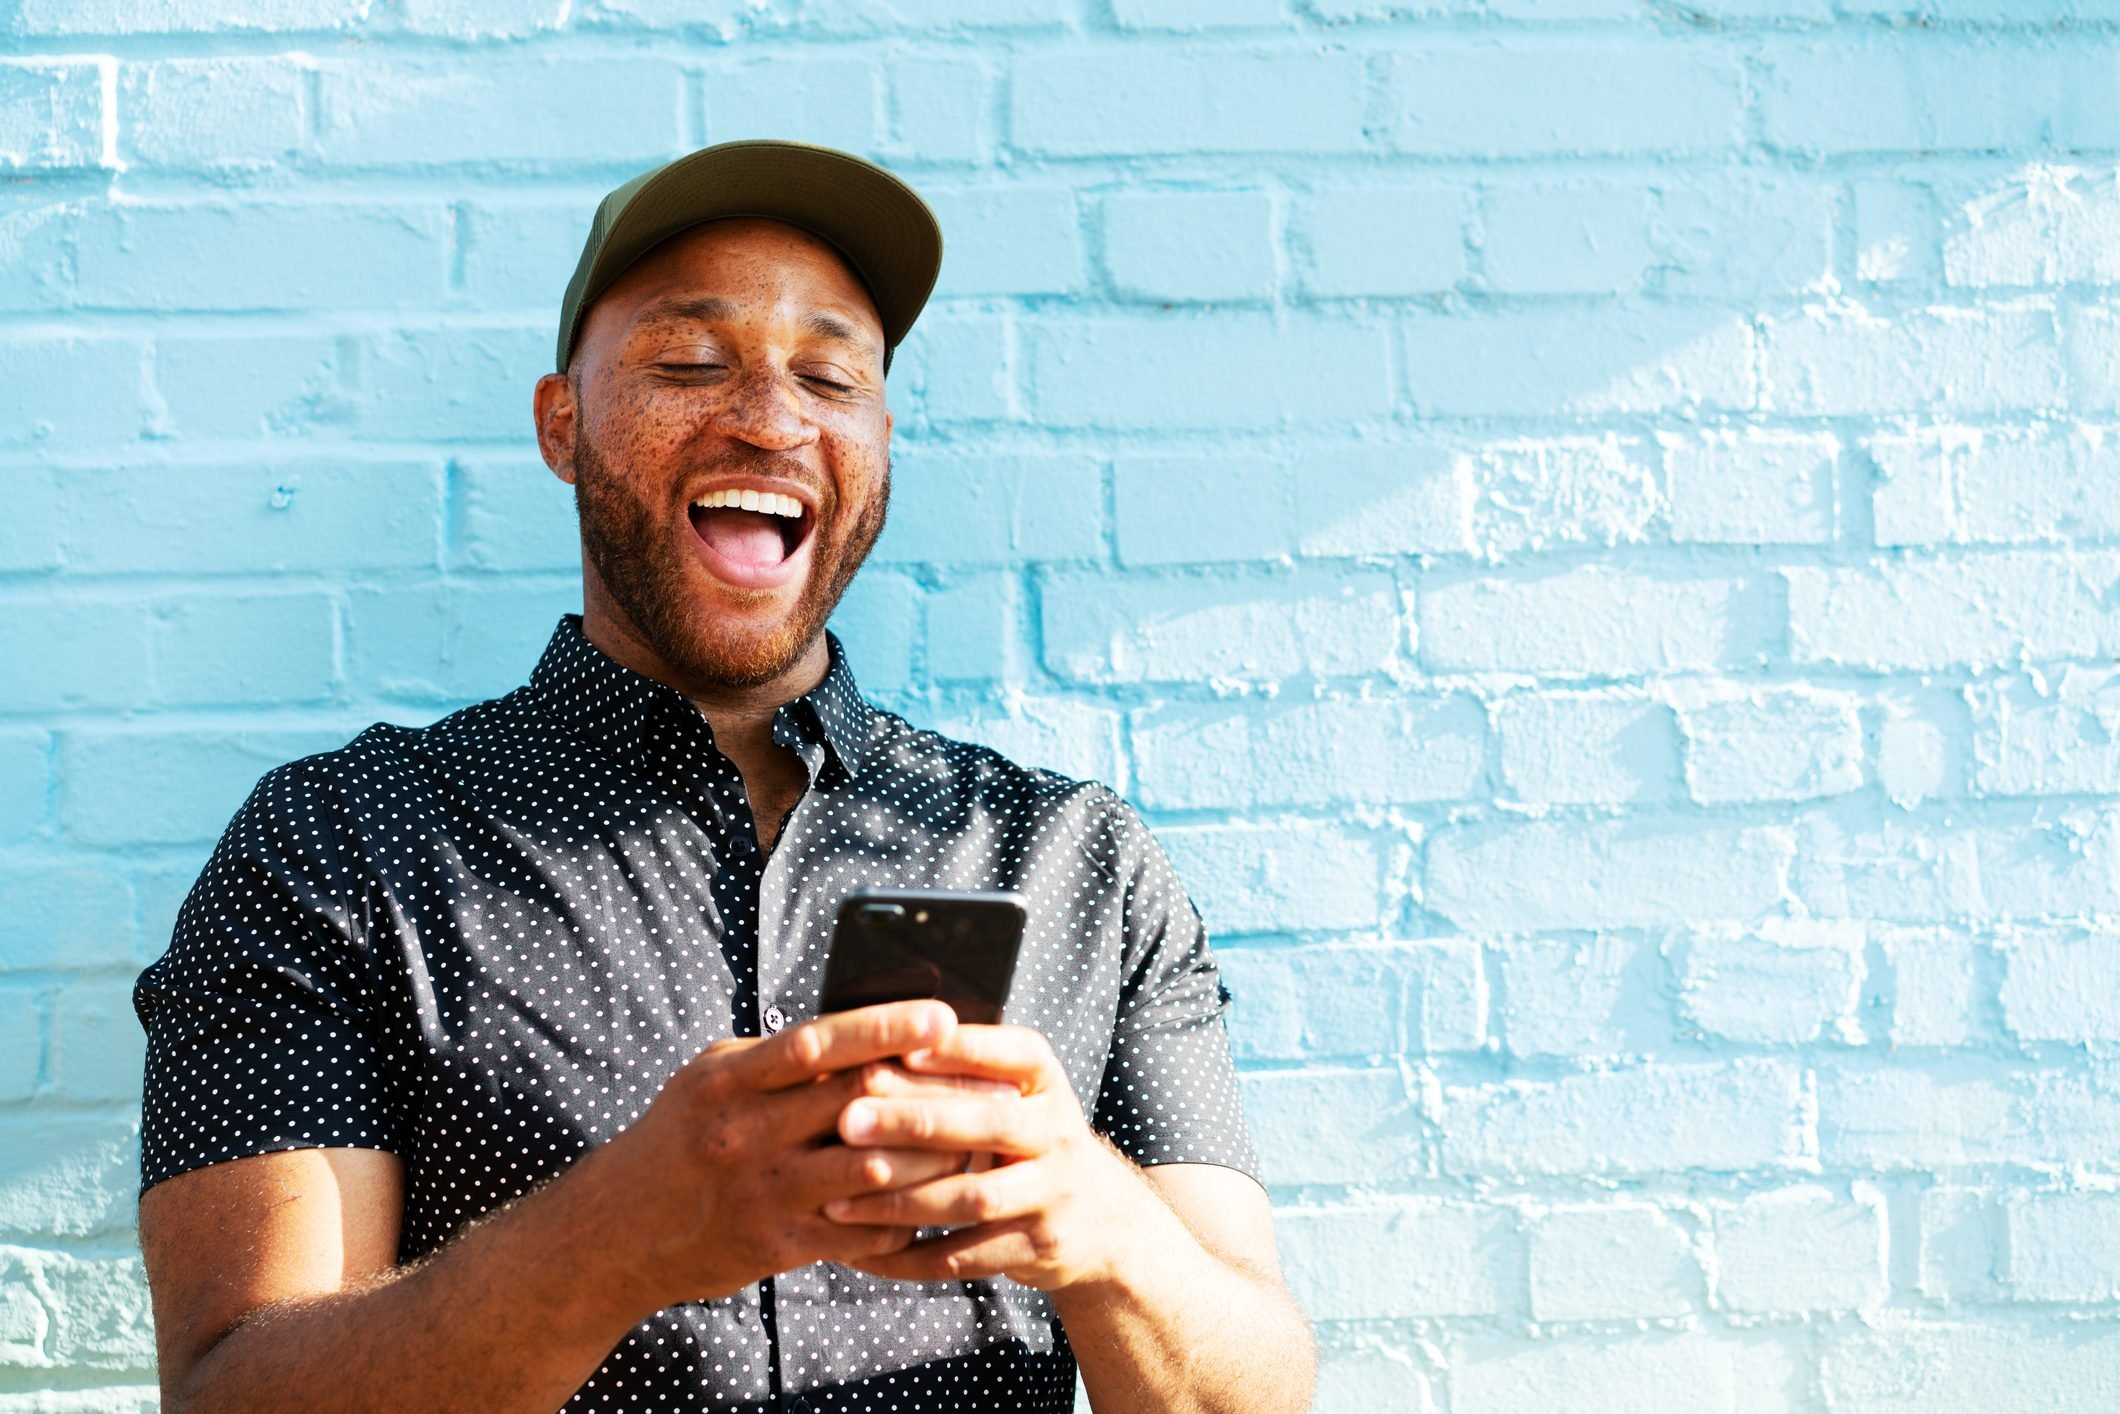 Man laughing with smart phone